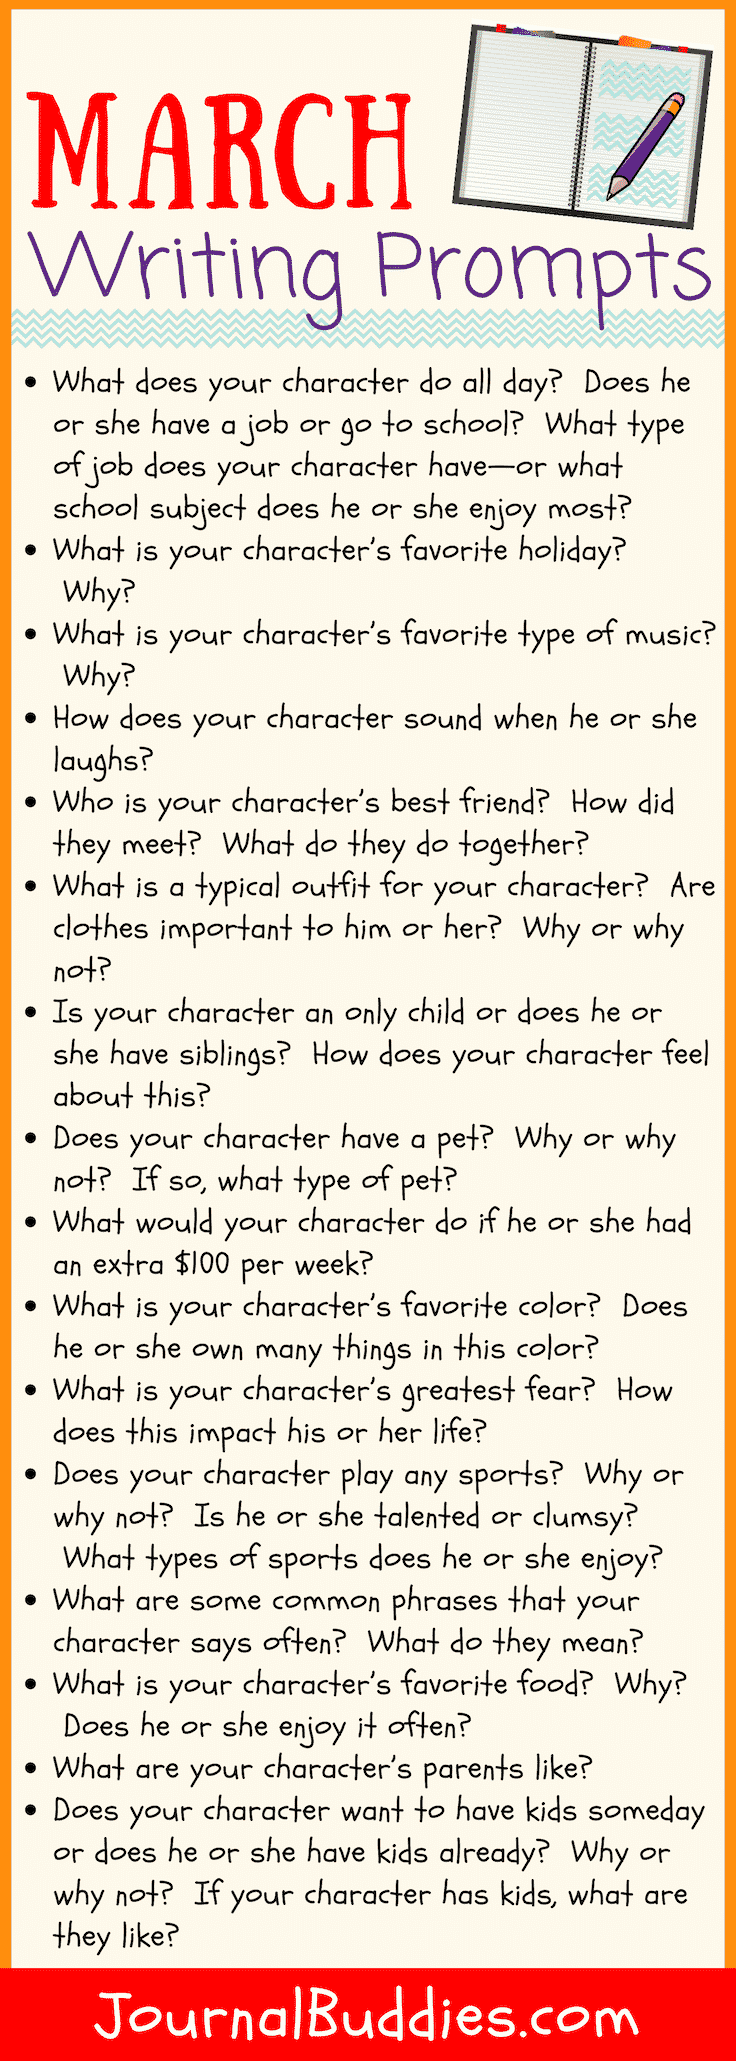 Short Story Ideas for Students for the Month of March